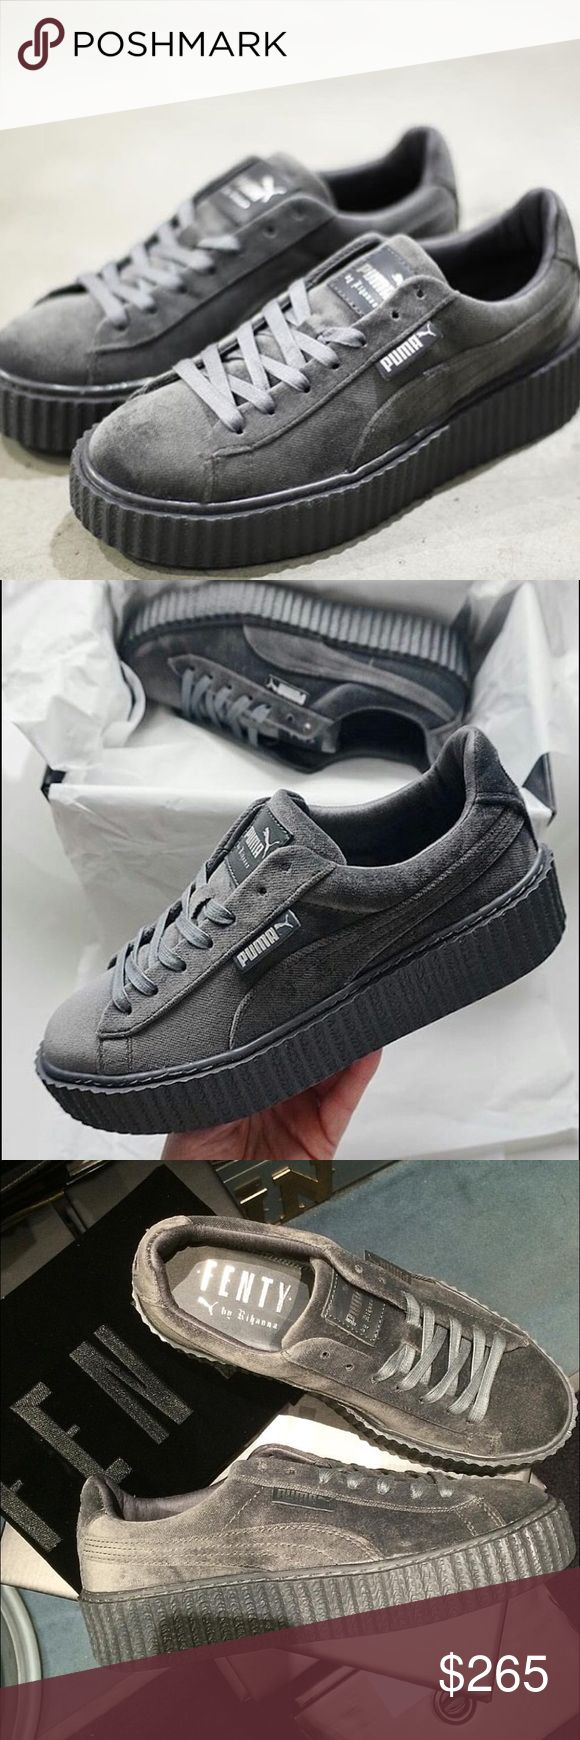 Rihanna's Puma x Fenty Glacier Grey Creepers!!  These shoes dropped on 12/8 and sold out in minutes. The grey pairs are gorgeous, in my opinion they show off the velvet fabric the best. I know the resale prices for these exceed the original sale price (look anywhere), but they are super limited edition. I'm also selling burgundy and black!! Poshmark takes a good chunk out of sales so I'd be happy to sell for less on Ⓜ️. If you have any questions please comment!! Also, I have these now, not…